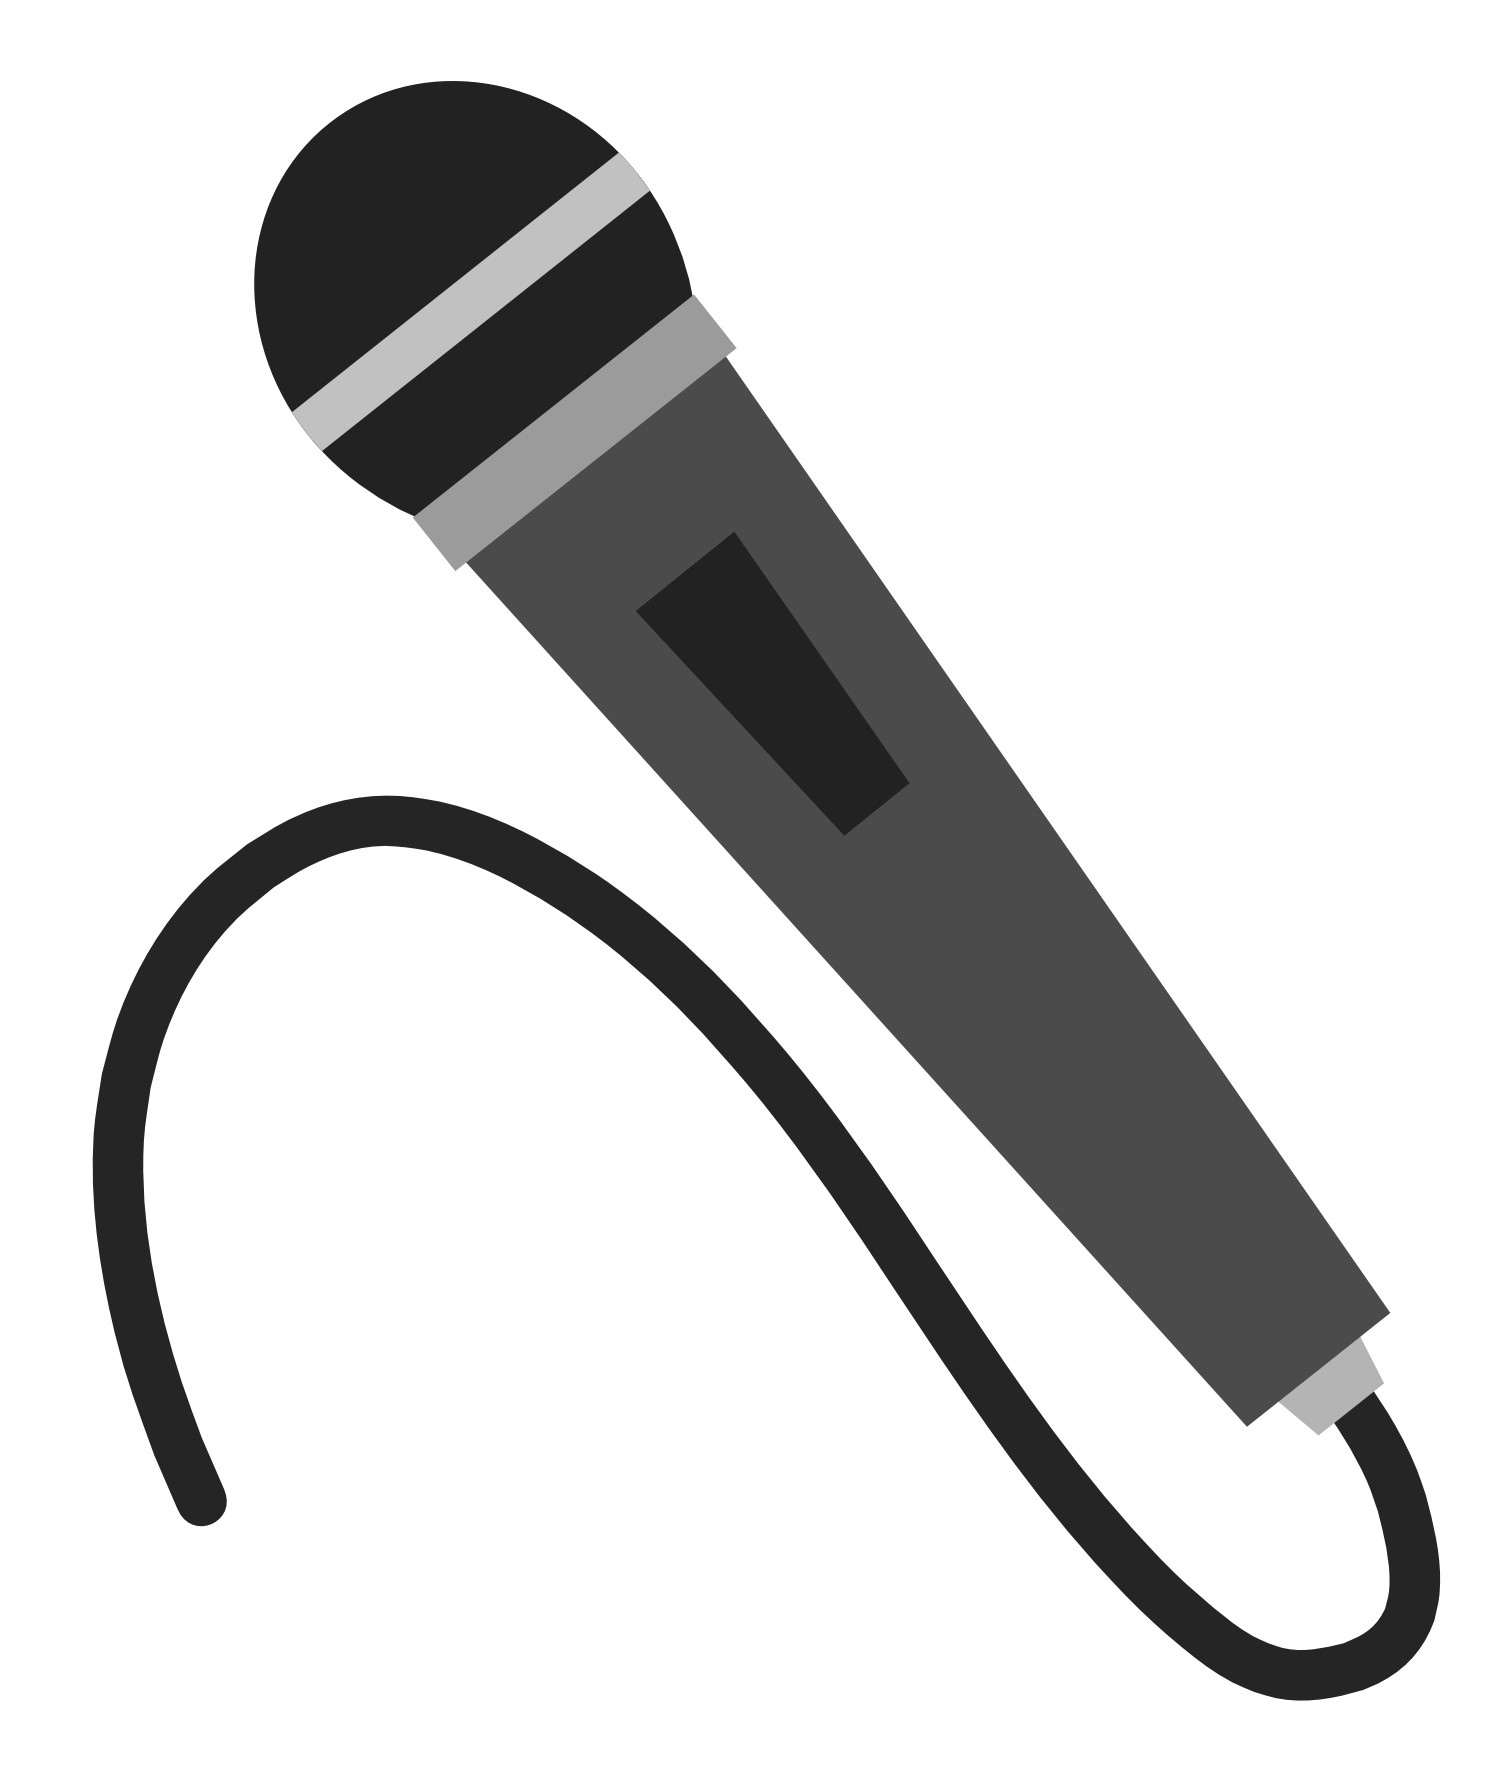 Cartoon microphone png. Radio clipart panda free